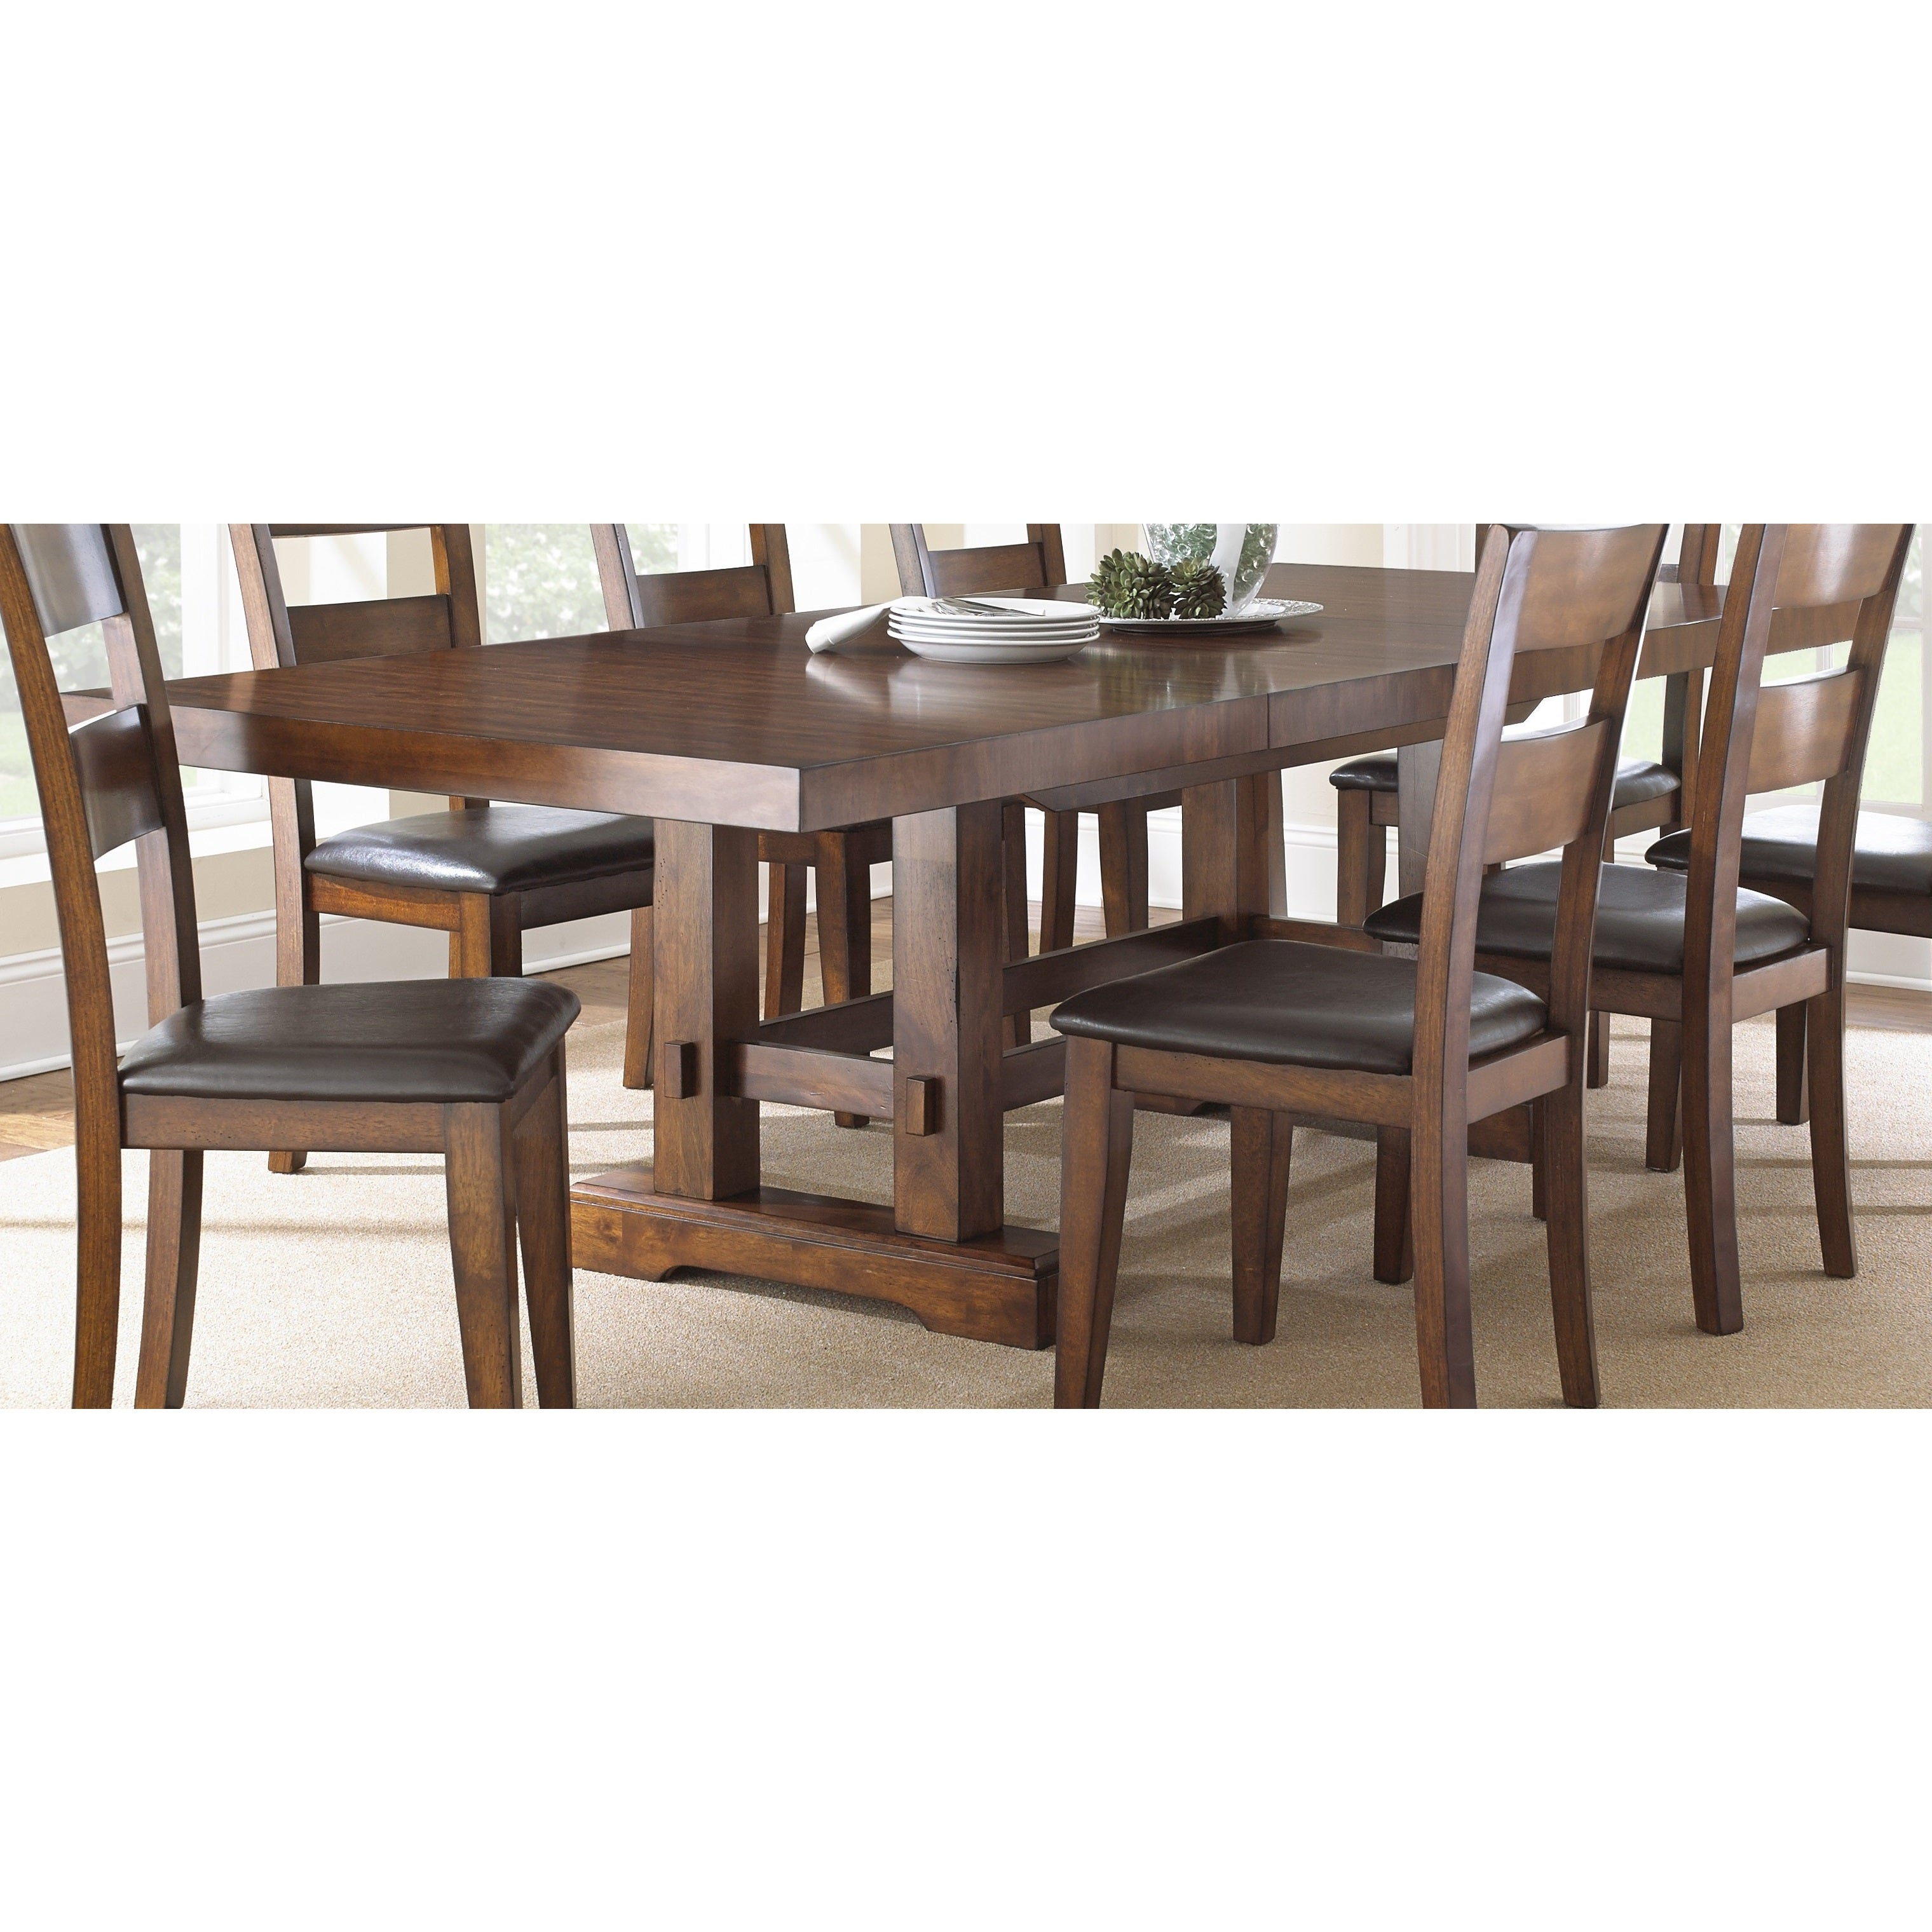 Denver 108 Inch Trestle Table By Greyson Living Free Shipping Today 15884007